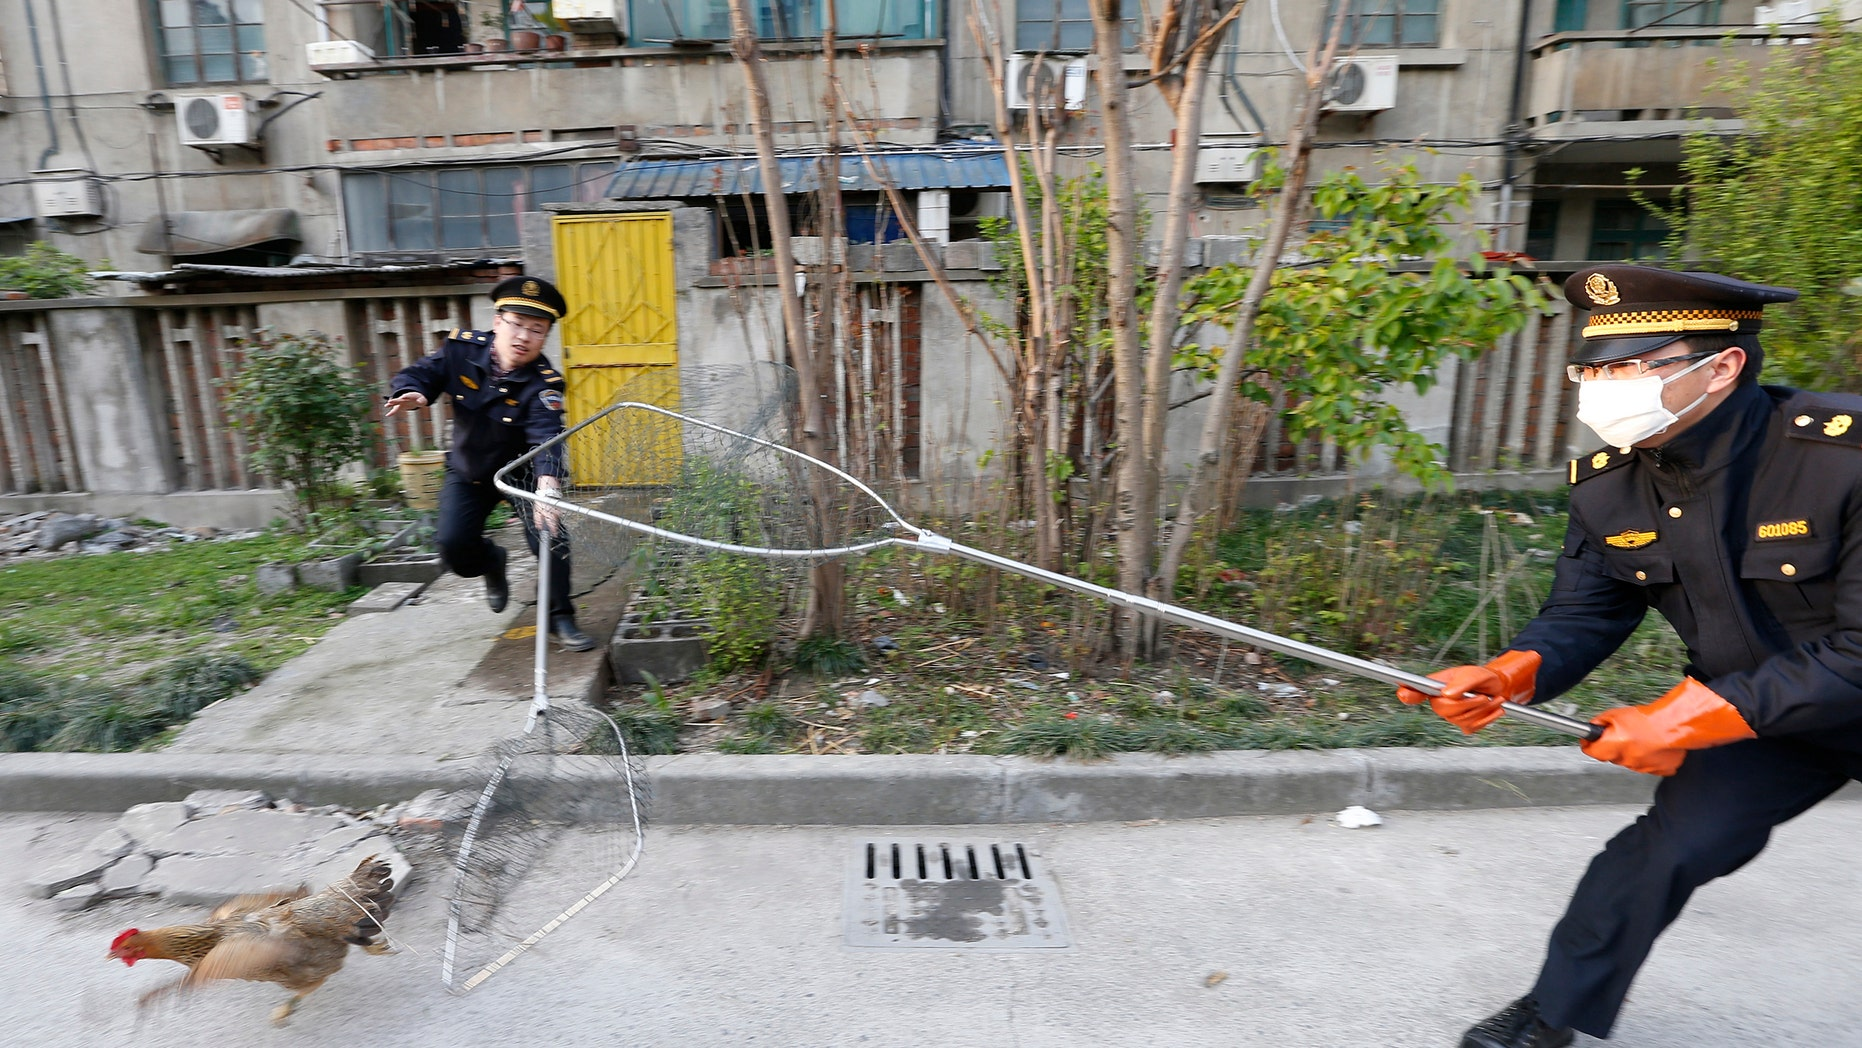 City management officers try to catch a chicken in a residential neighbourhood of Jiaxing, Zhejiang province, April 11, 2013.